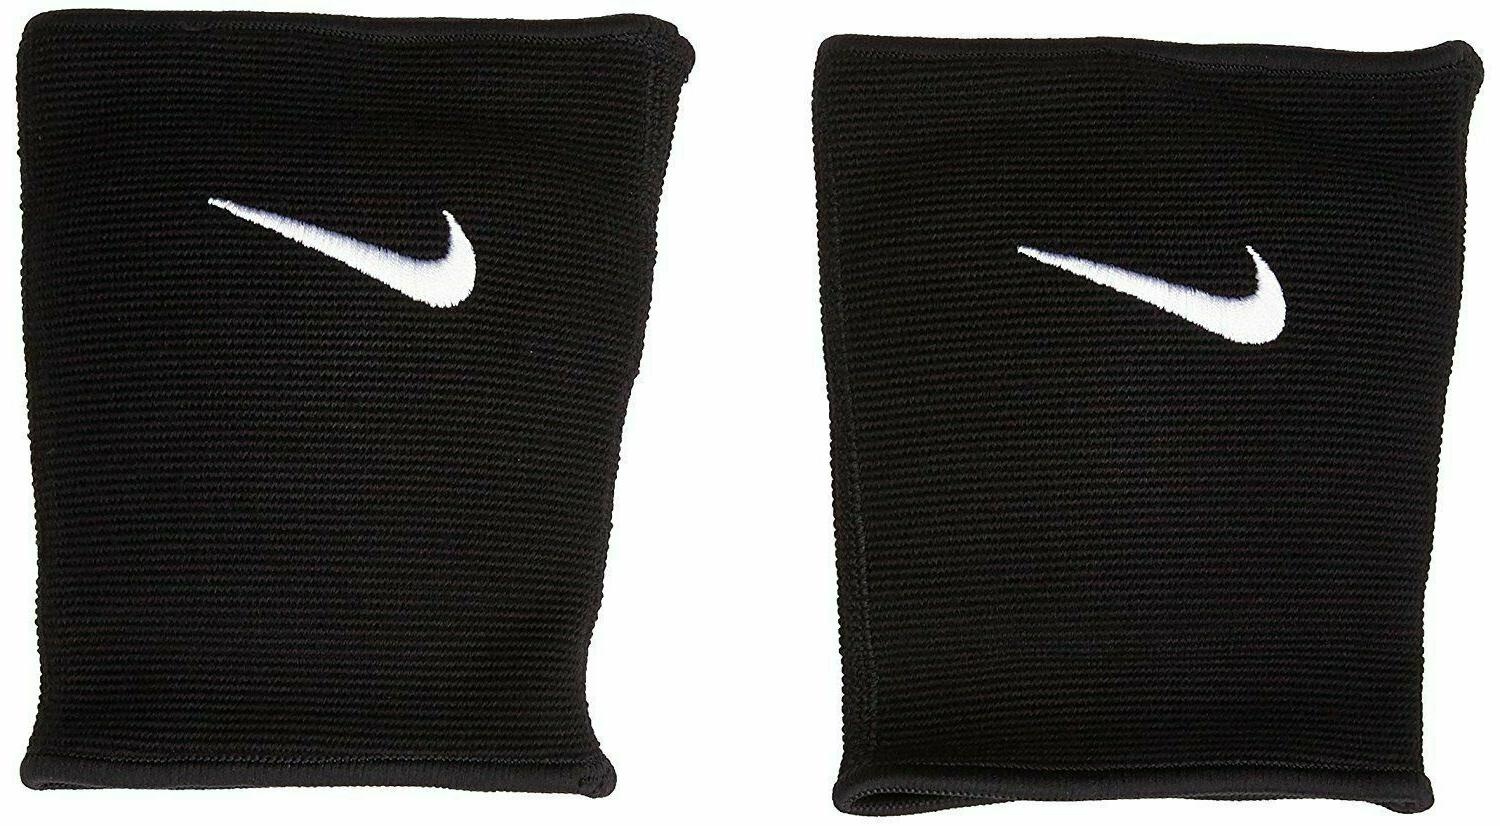 Nike Essentials VB Knee Pad  - Black, XS/S